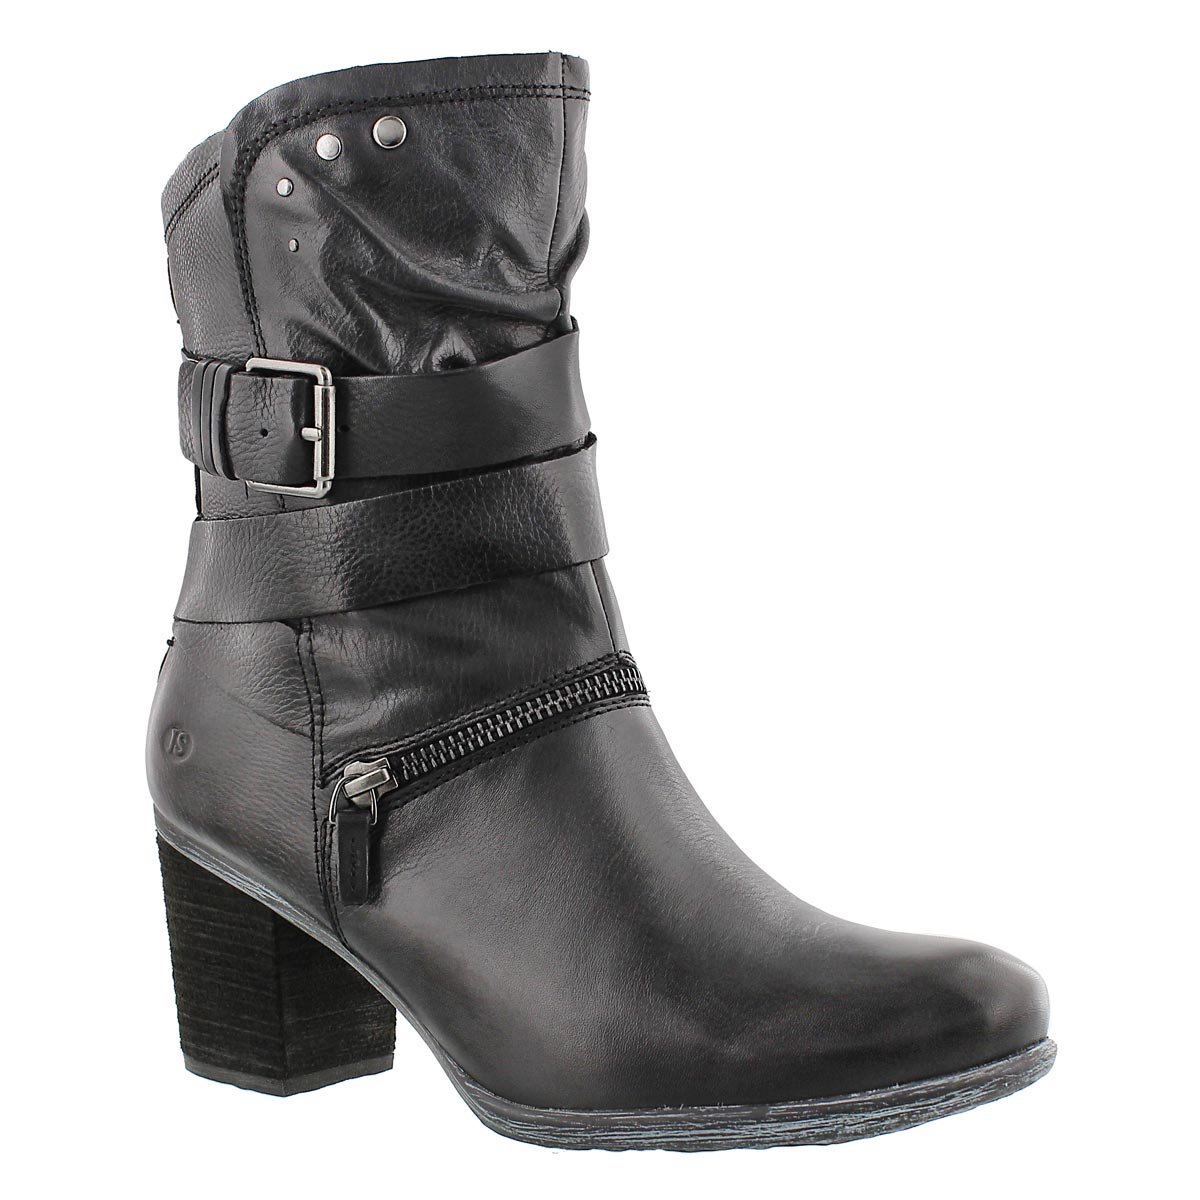 Women's BRITNEY 06 black leather mid-calf boot